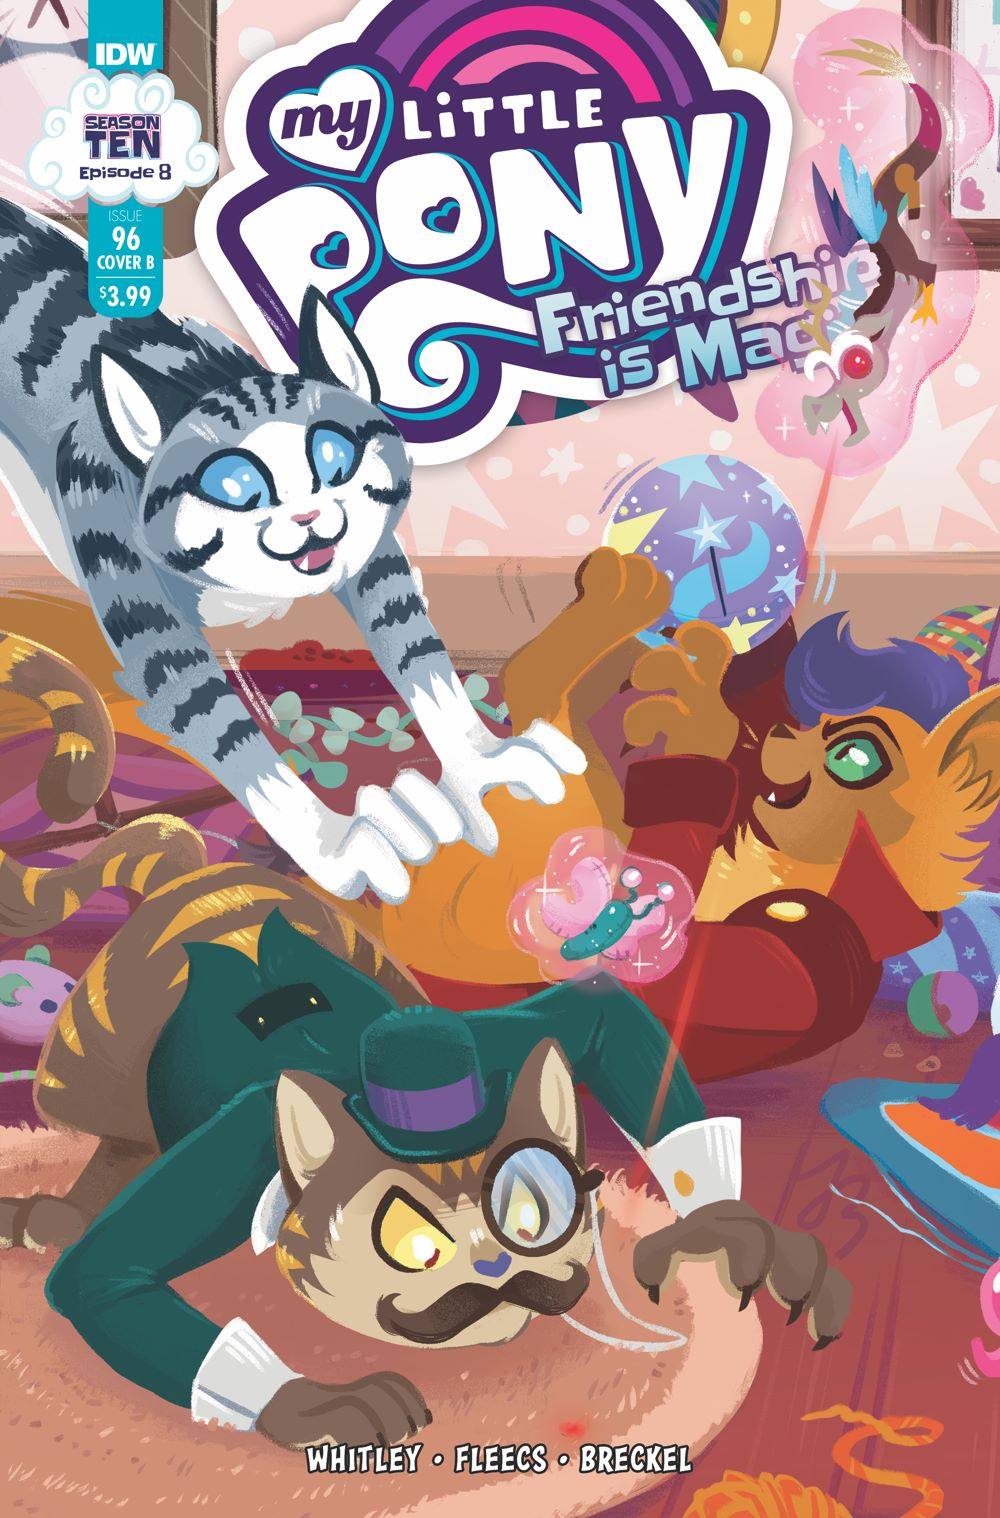 MLP96_08-coverB ComicList Previews: MY LITTLE PONY FRIENDSHIP IS MAGIC #96